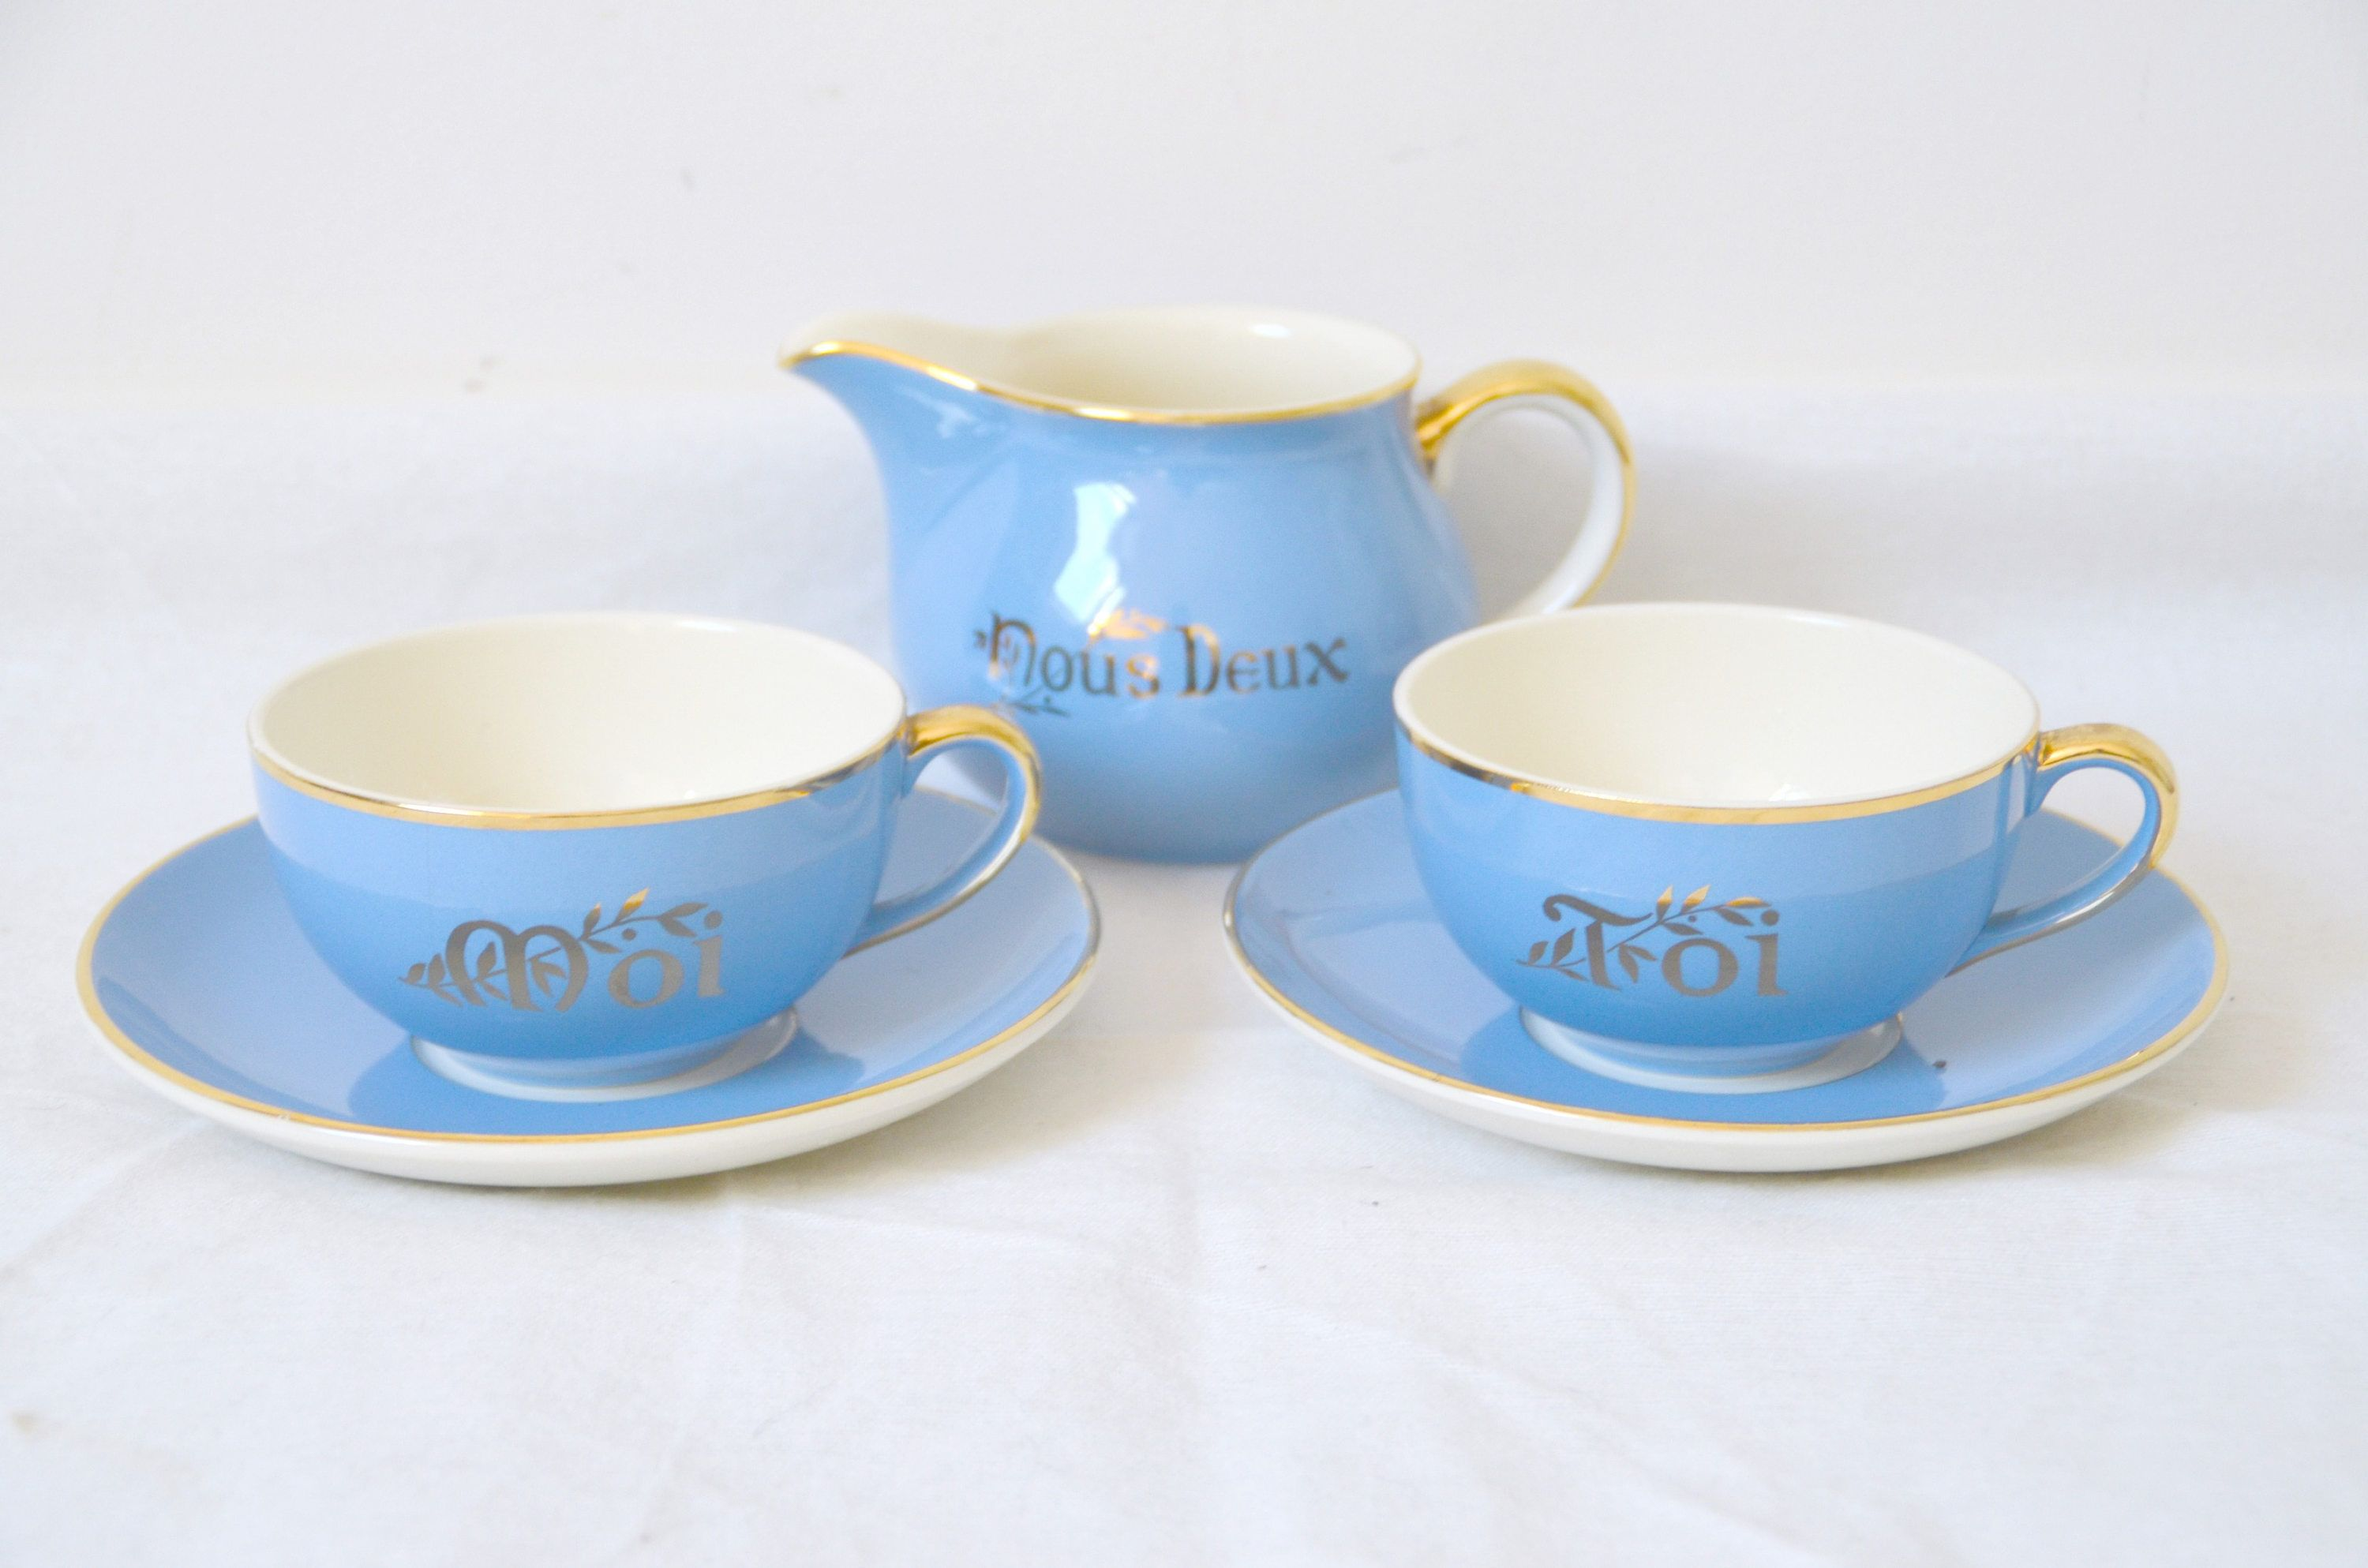 Serving breakfast you and me Villeroy & Boch, blue and